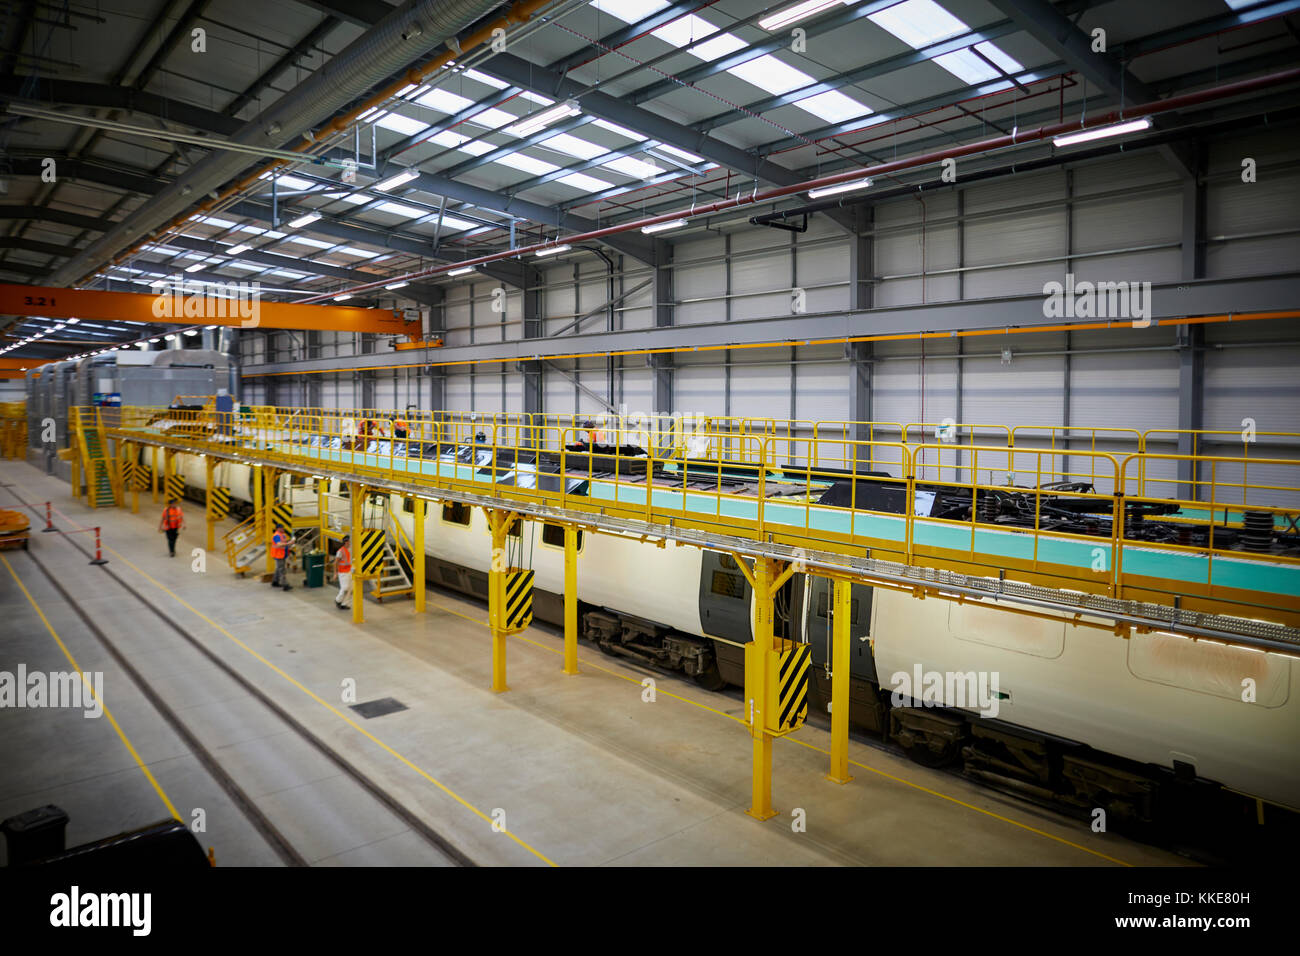 Alstom Class 390 Pendolino railway stock being refurbished at the start of the art Alstom Widnes repainting plant, - Stock Image